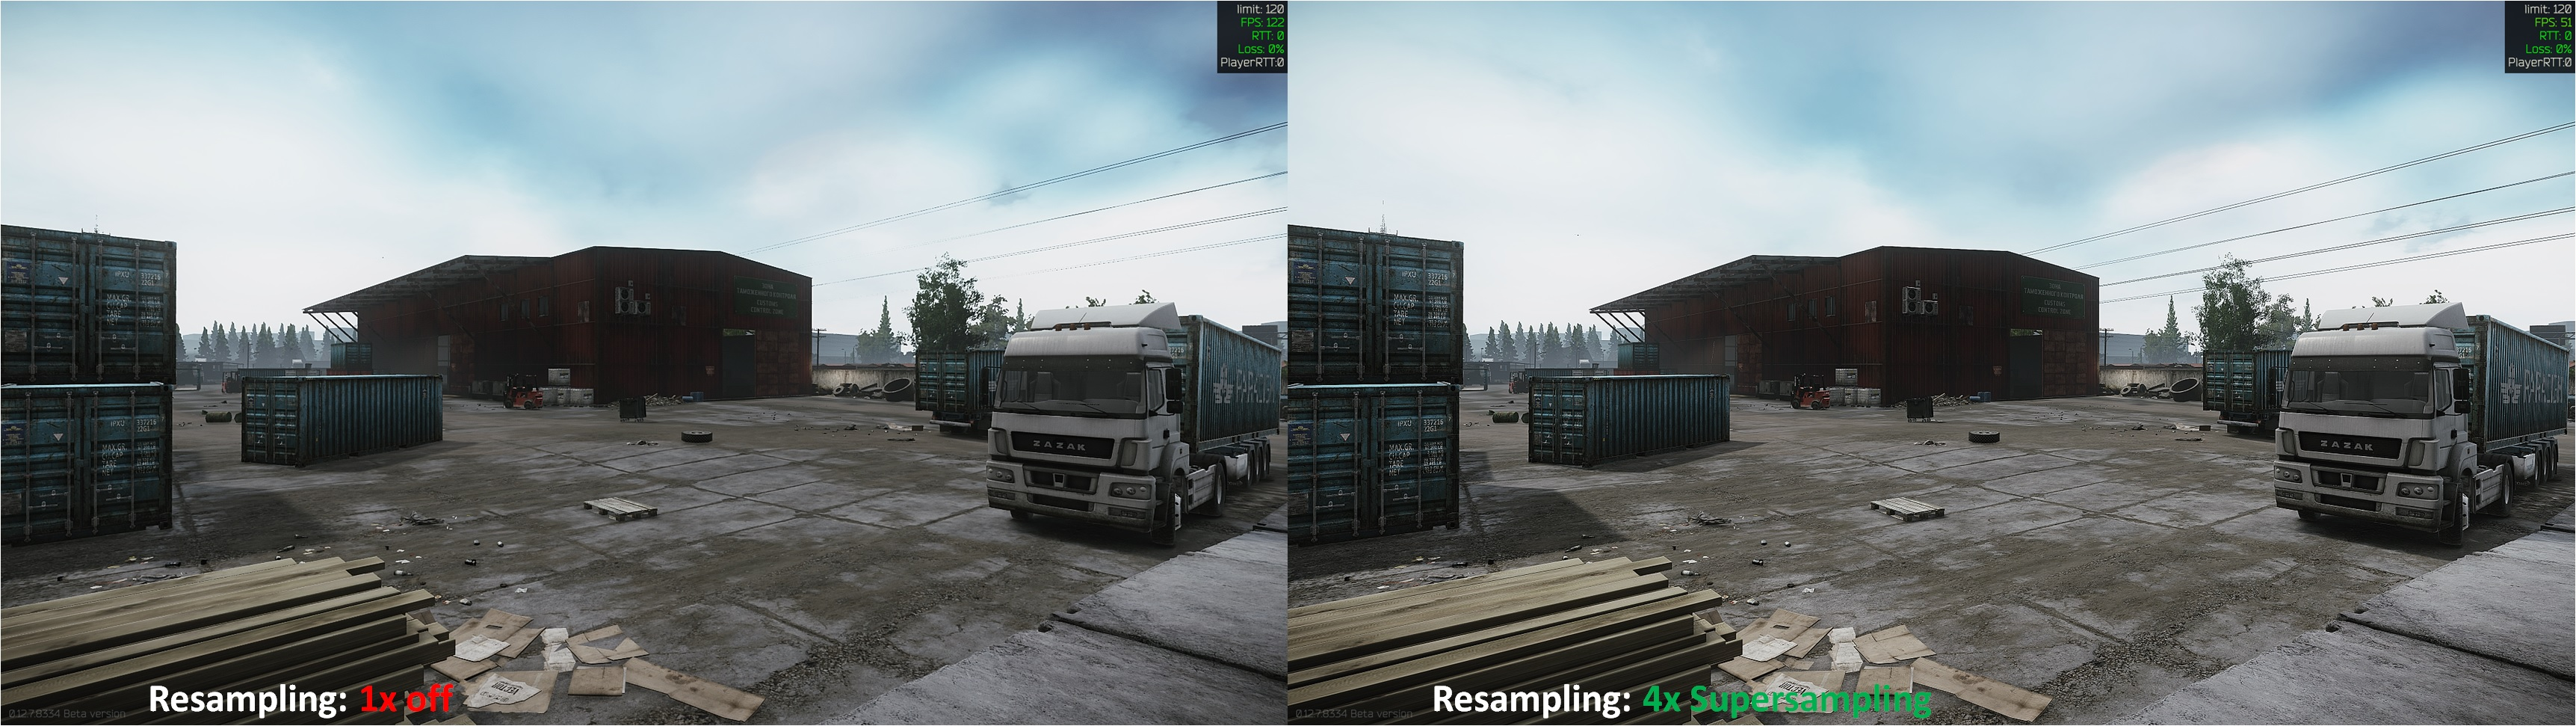 Tarkov Resampling Comparison